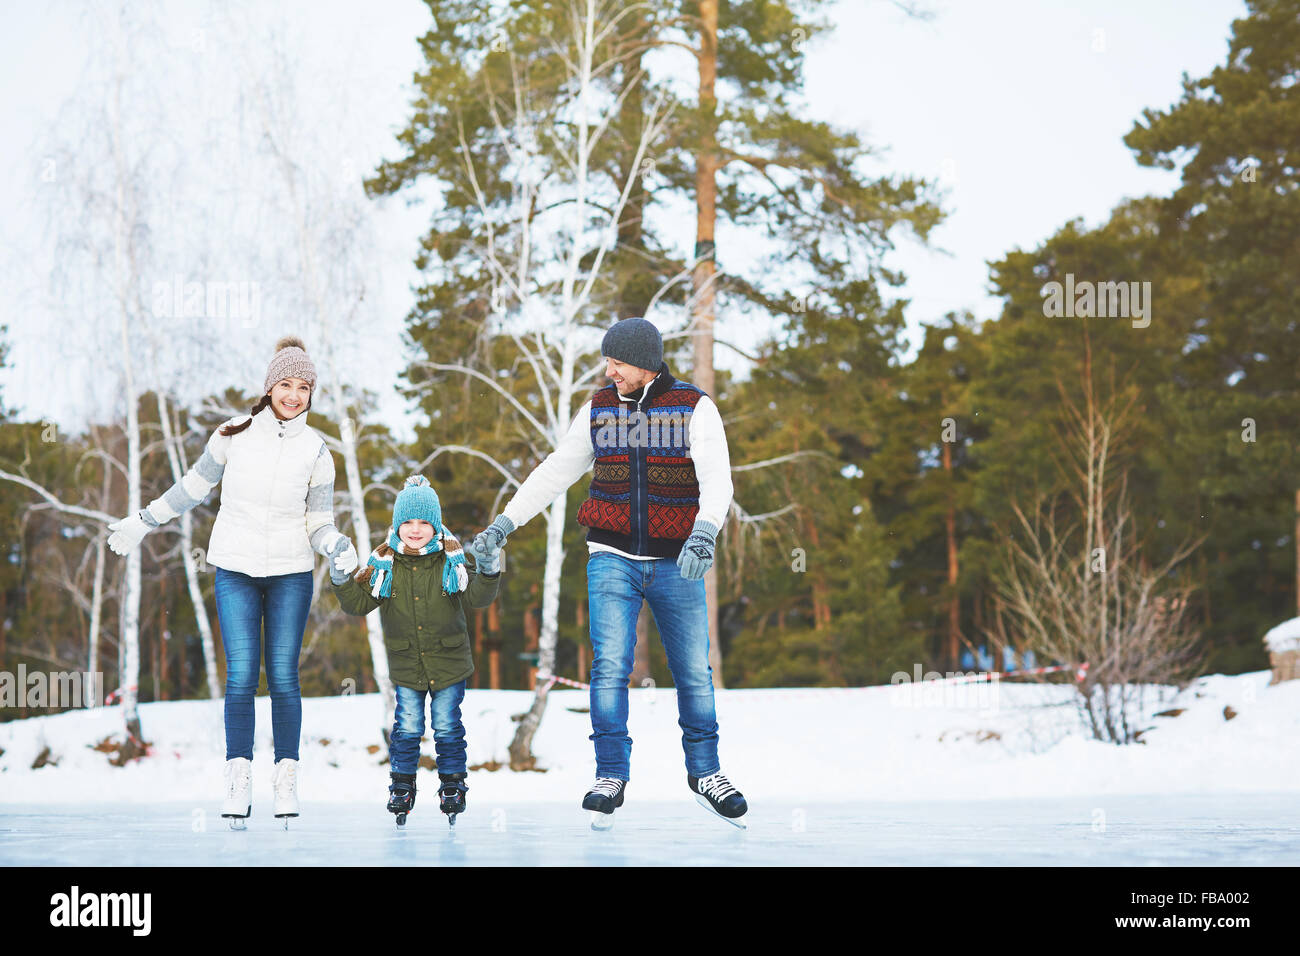 Family ice skating in the park - Stock Image